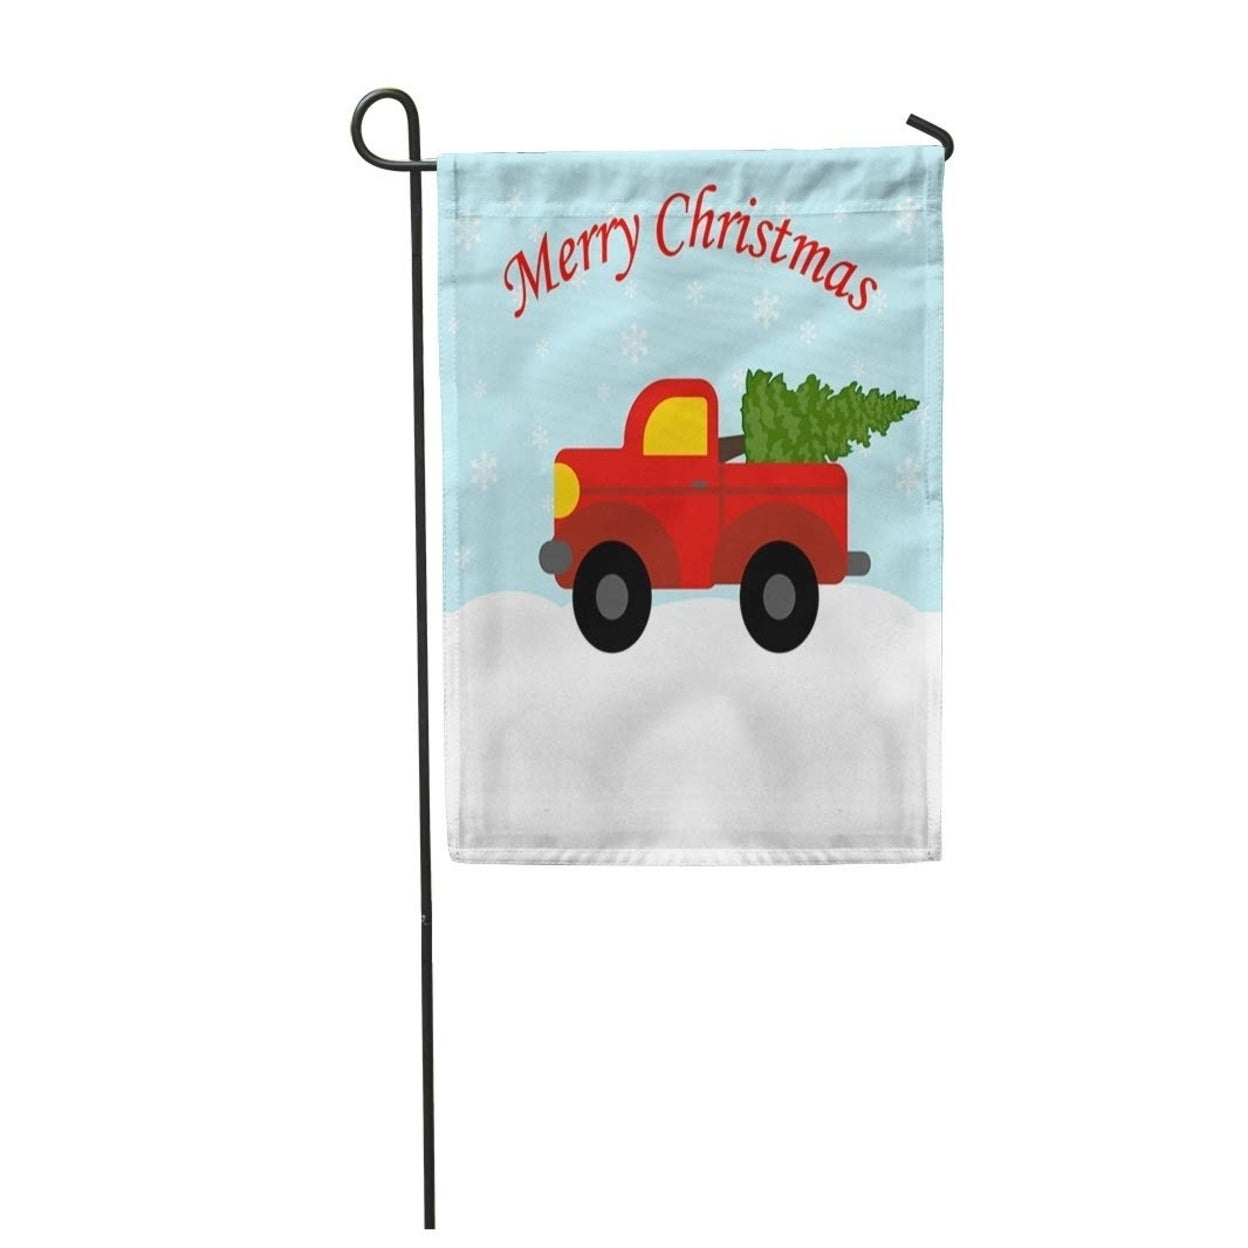 Auto Red Truck Christmas Tree Car Cartoon Celebration December Garden Flag Decorative Flag House Banner 12x18 Inch On Sale Overstock 31391878 Learn her entire backstory and watch all four new adventure time episodes on the cn app. overstock com